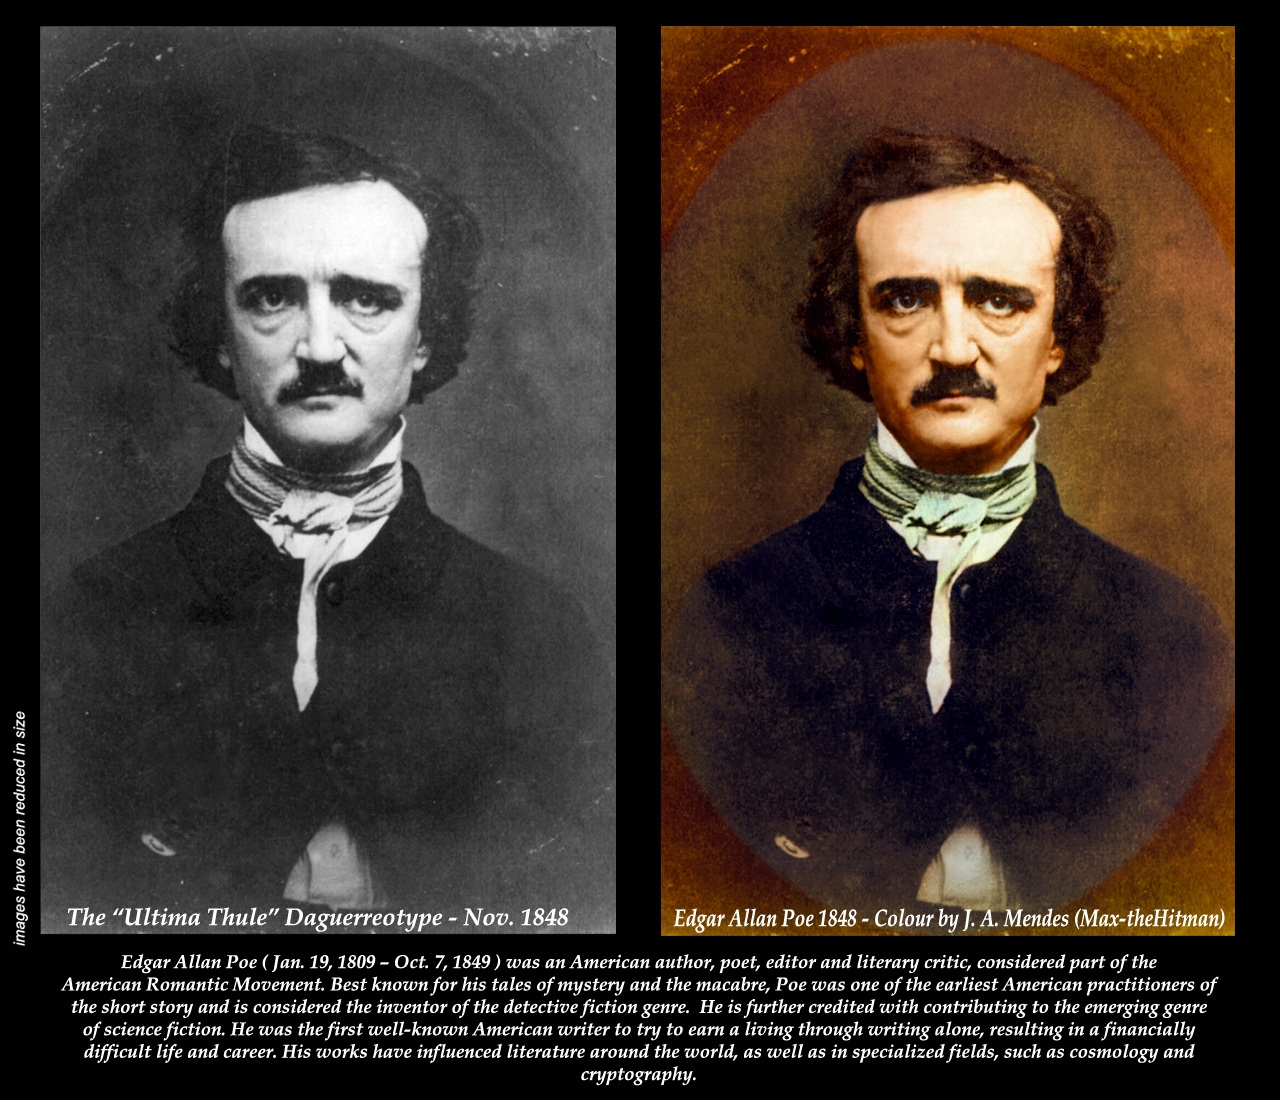 the question of whether edgar allan poe was a madman or a literary genius